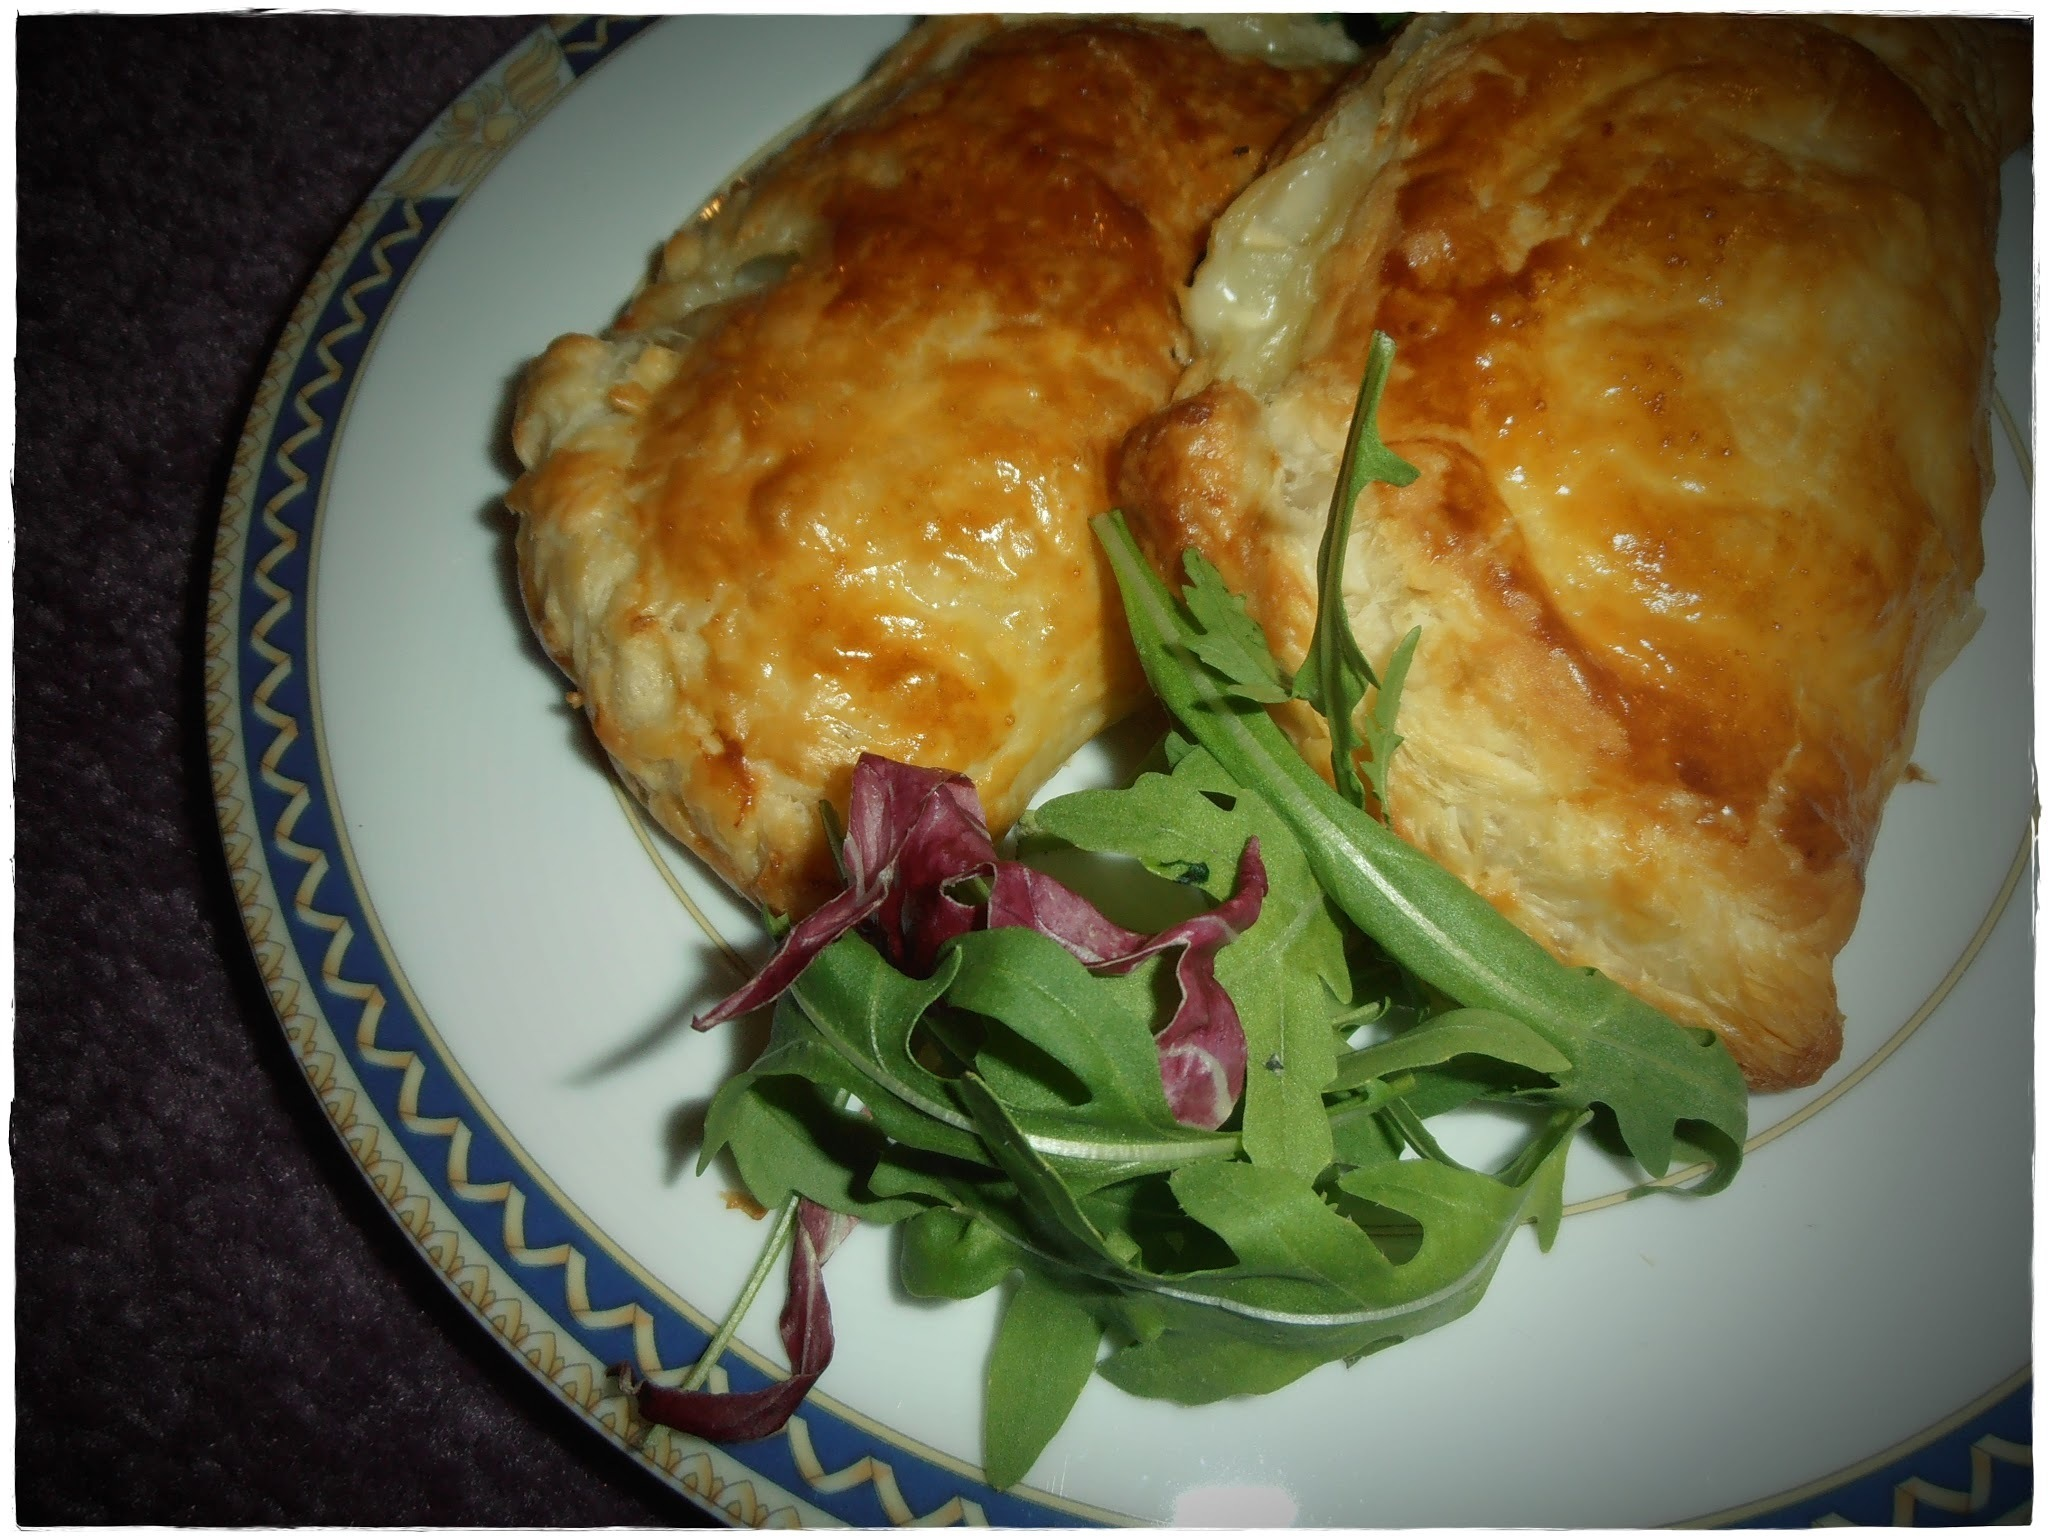 Cornish pasty with cheese and onion :)